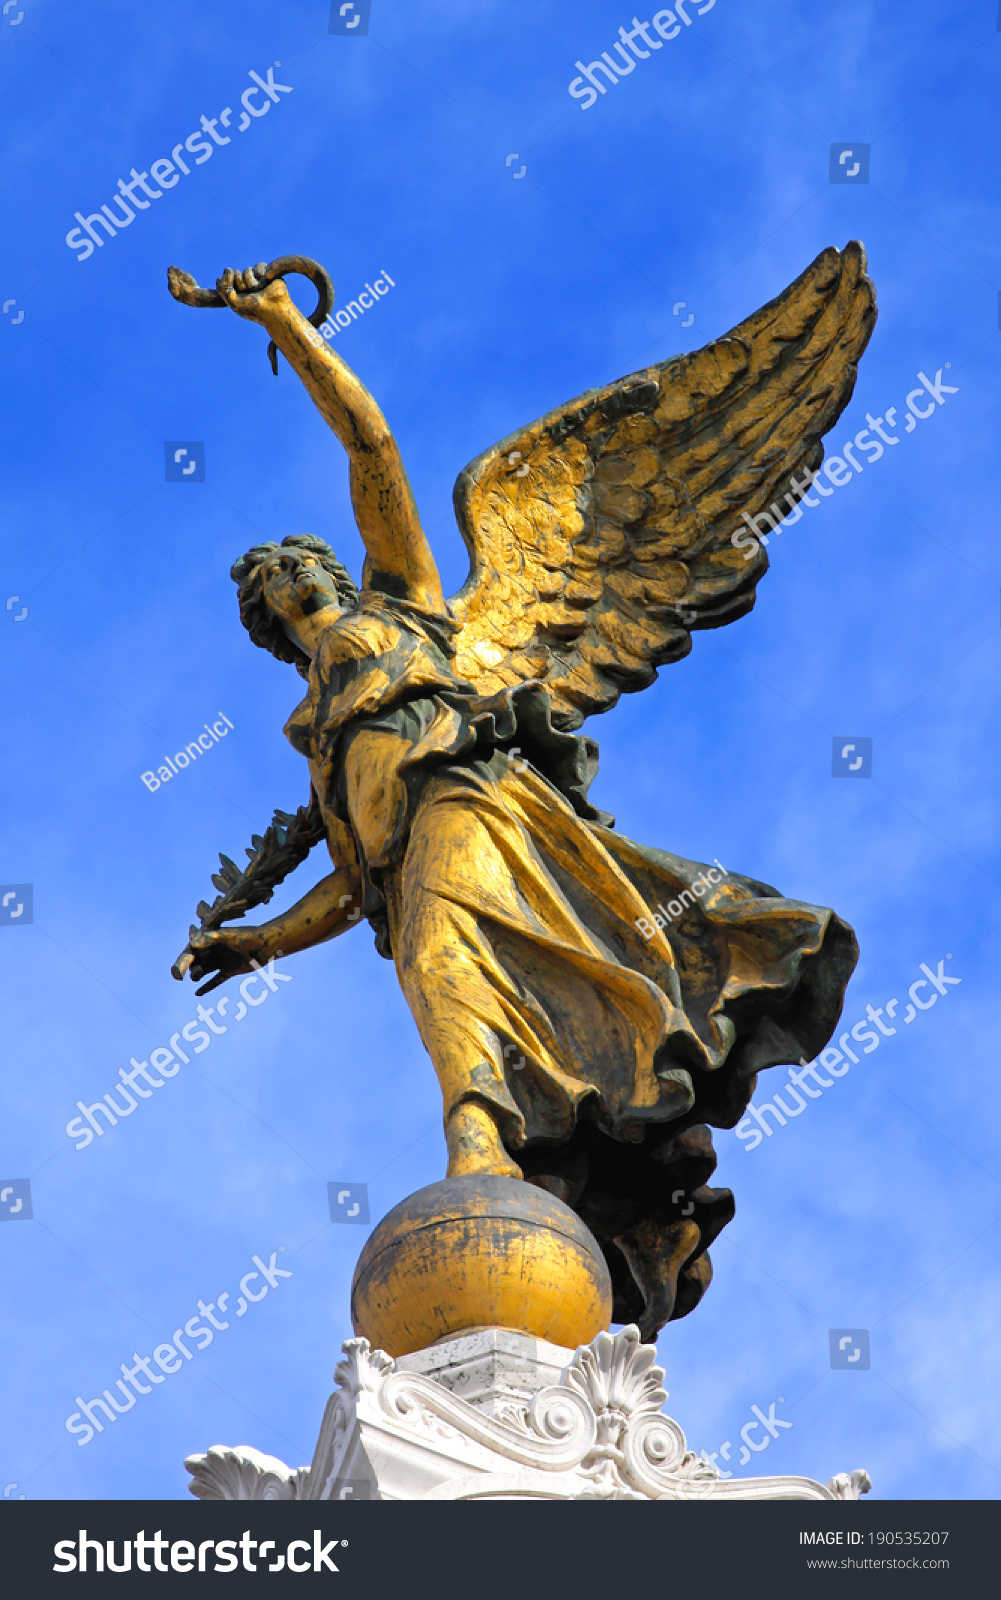 Rome italy october 25 winged victory stock photo 190535207 rome italy october 25 winged victory statue in rome on october 25 biocorpaavc